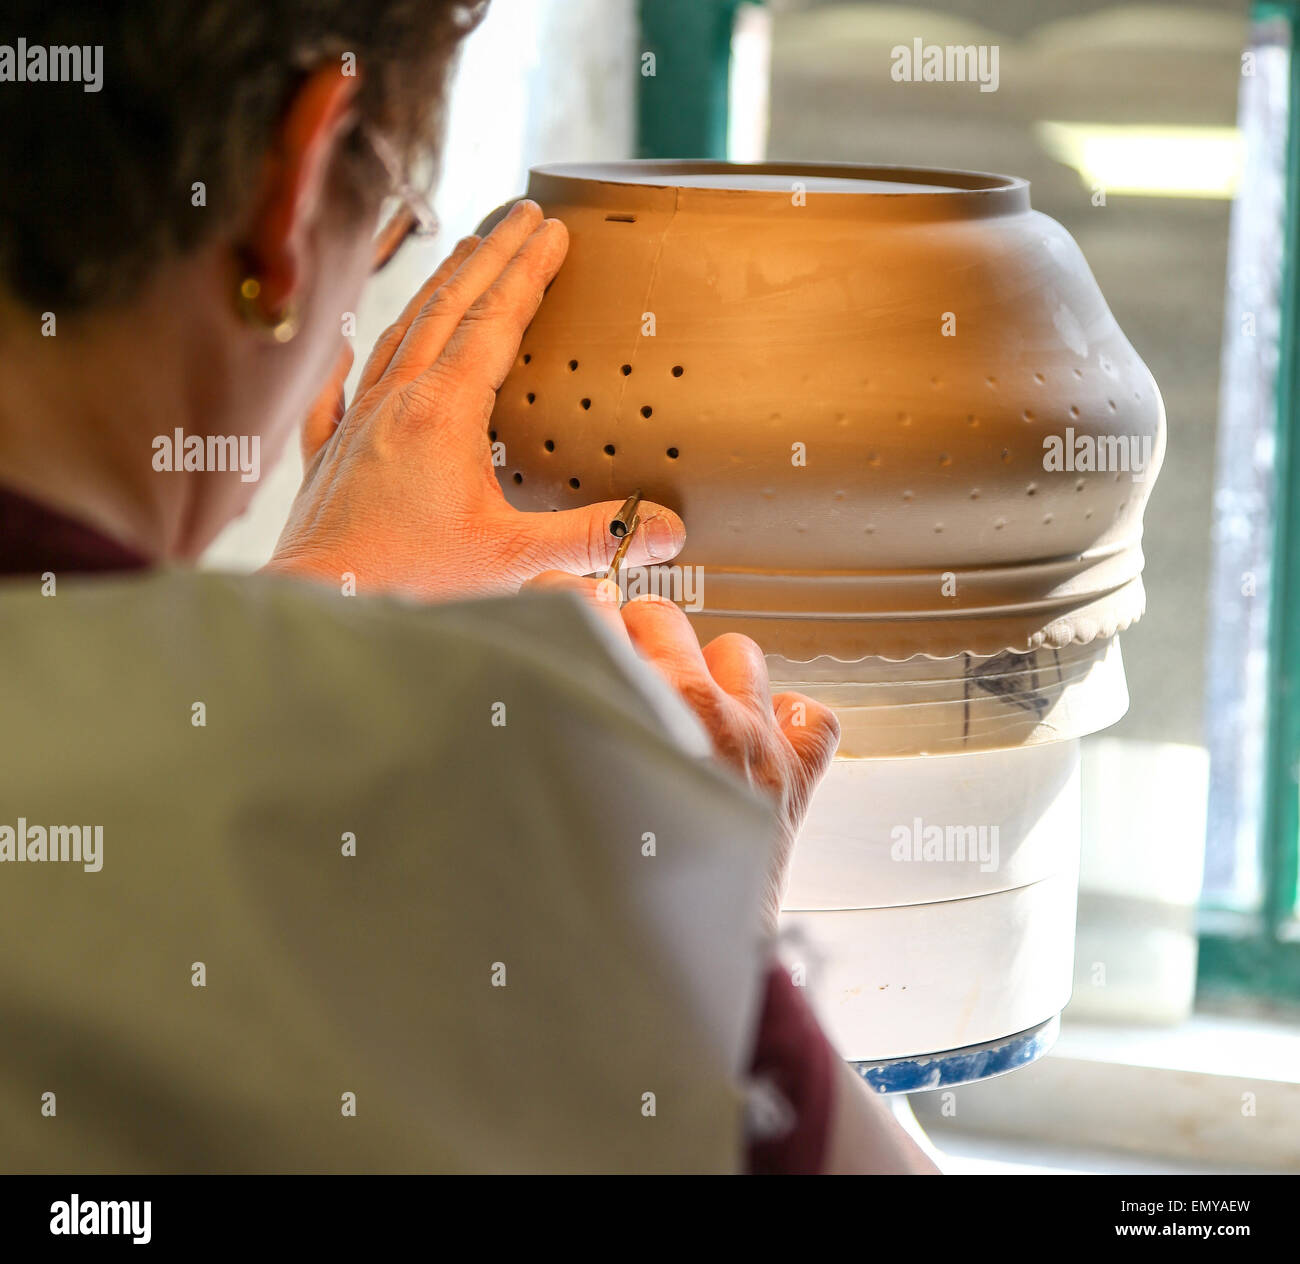 a-woman-hand-piercing-a-clay-pot-at-the-burleigh-middleport-pottery-EMYAEW.jpg